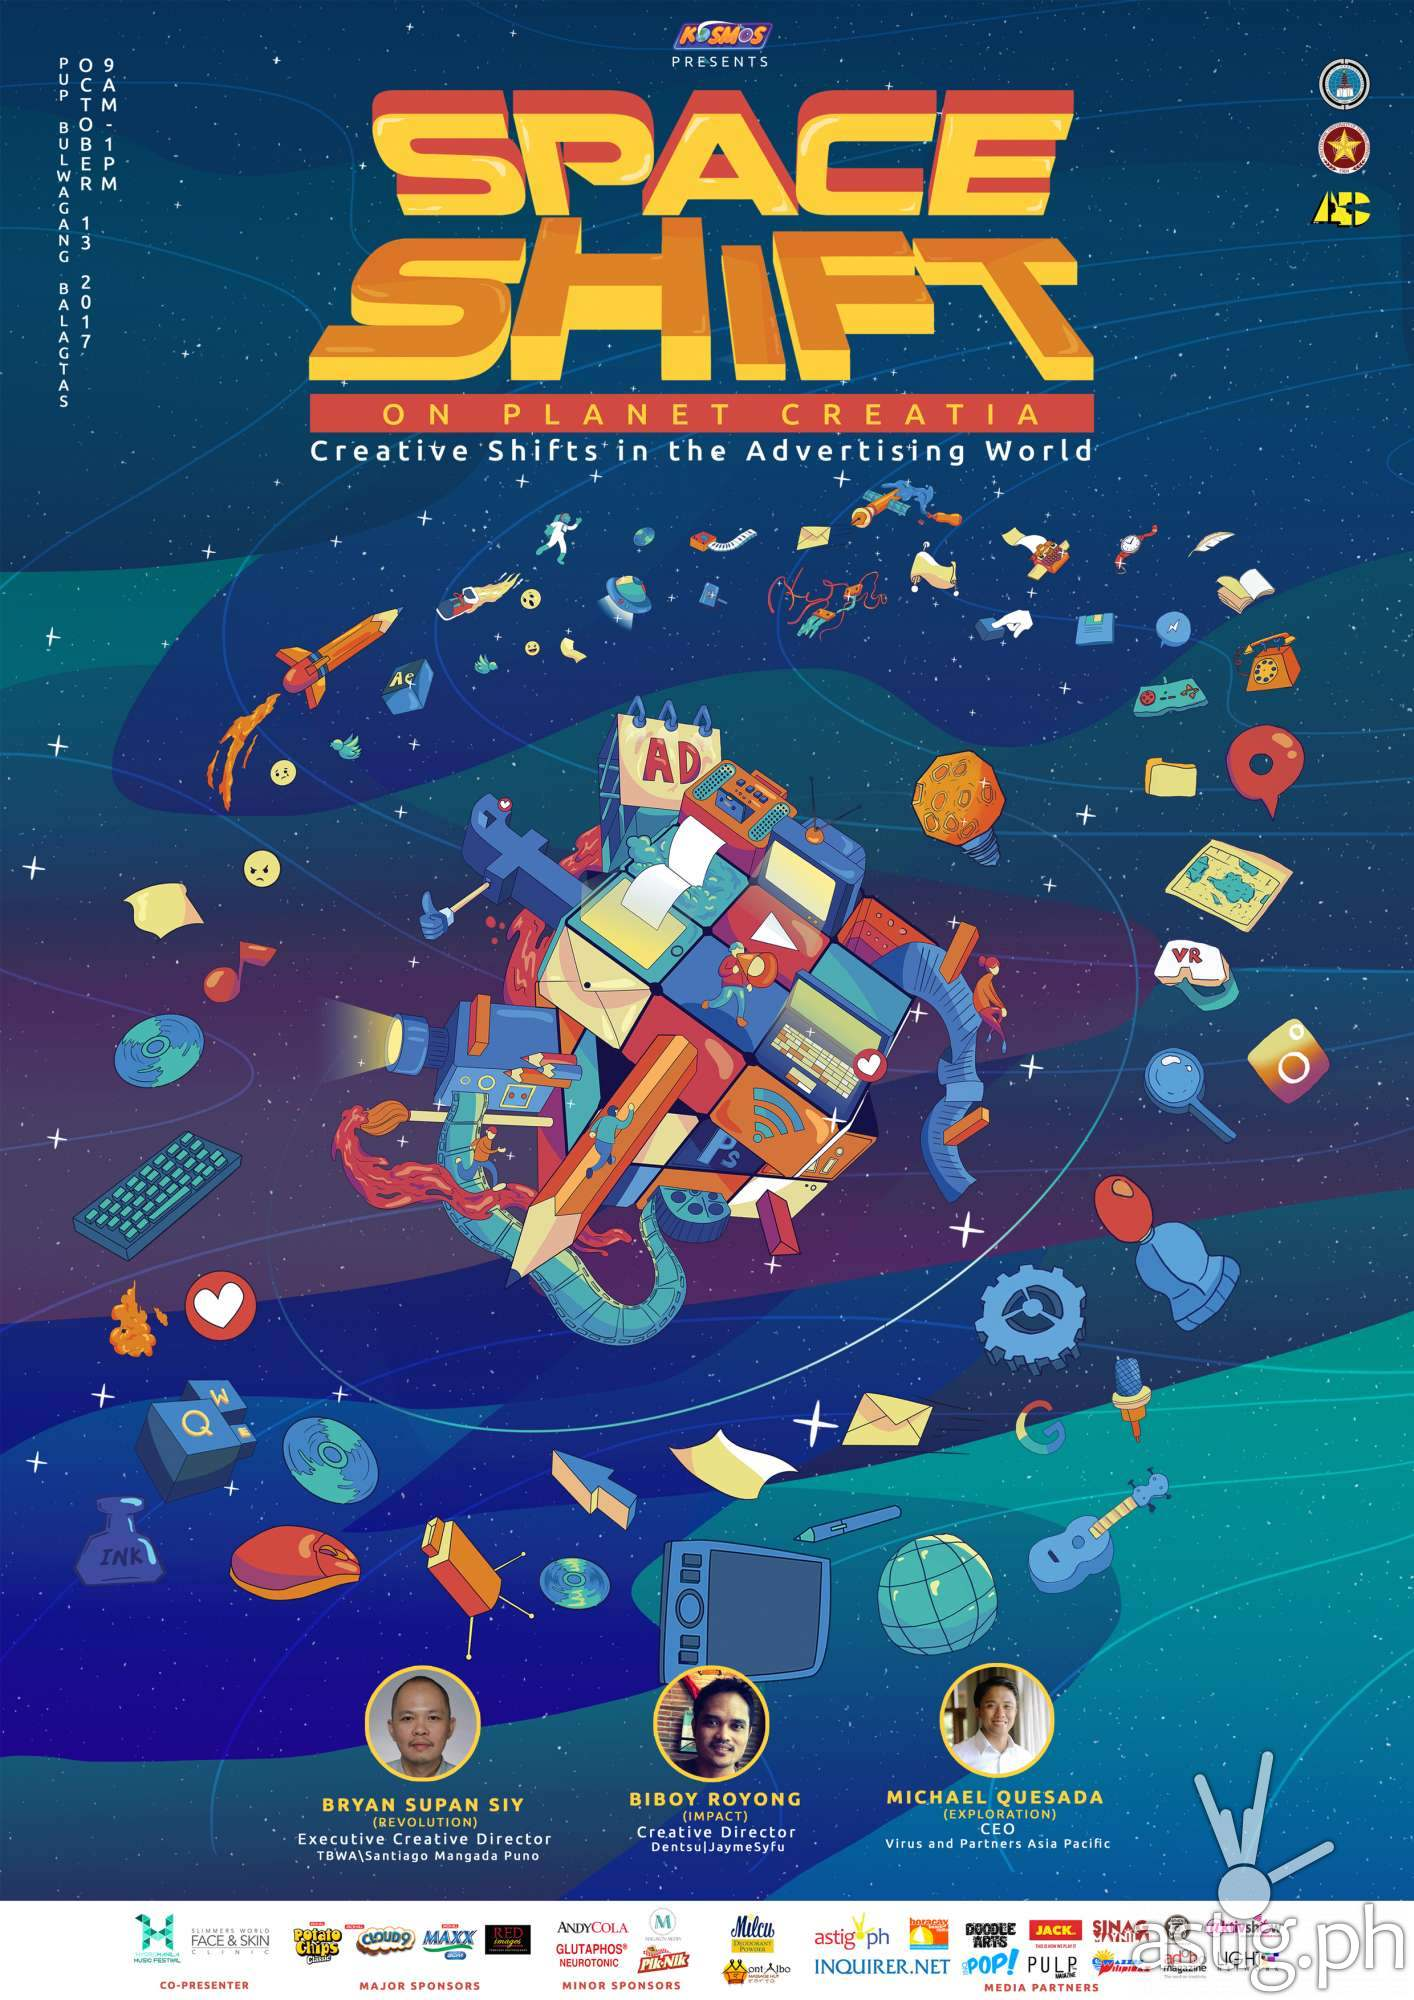 SPACE SHIFT poster